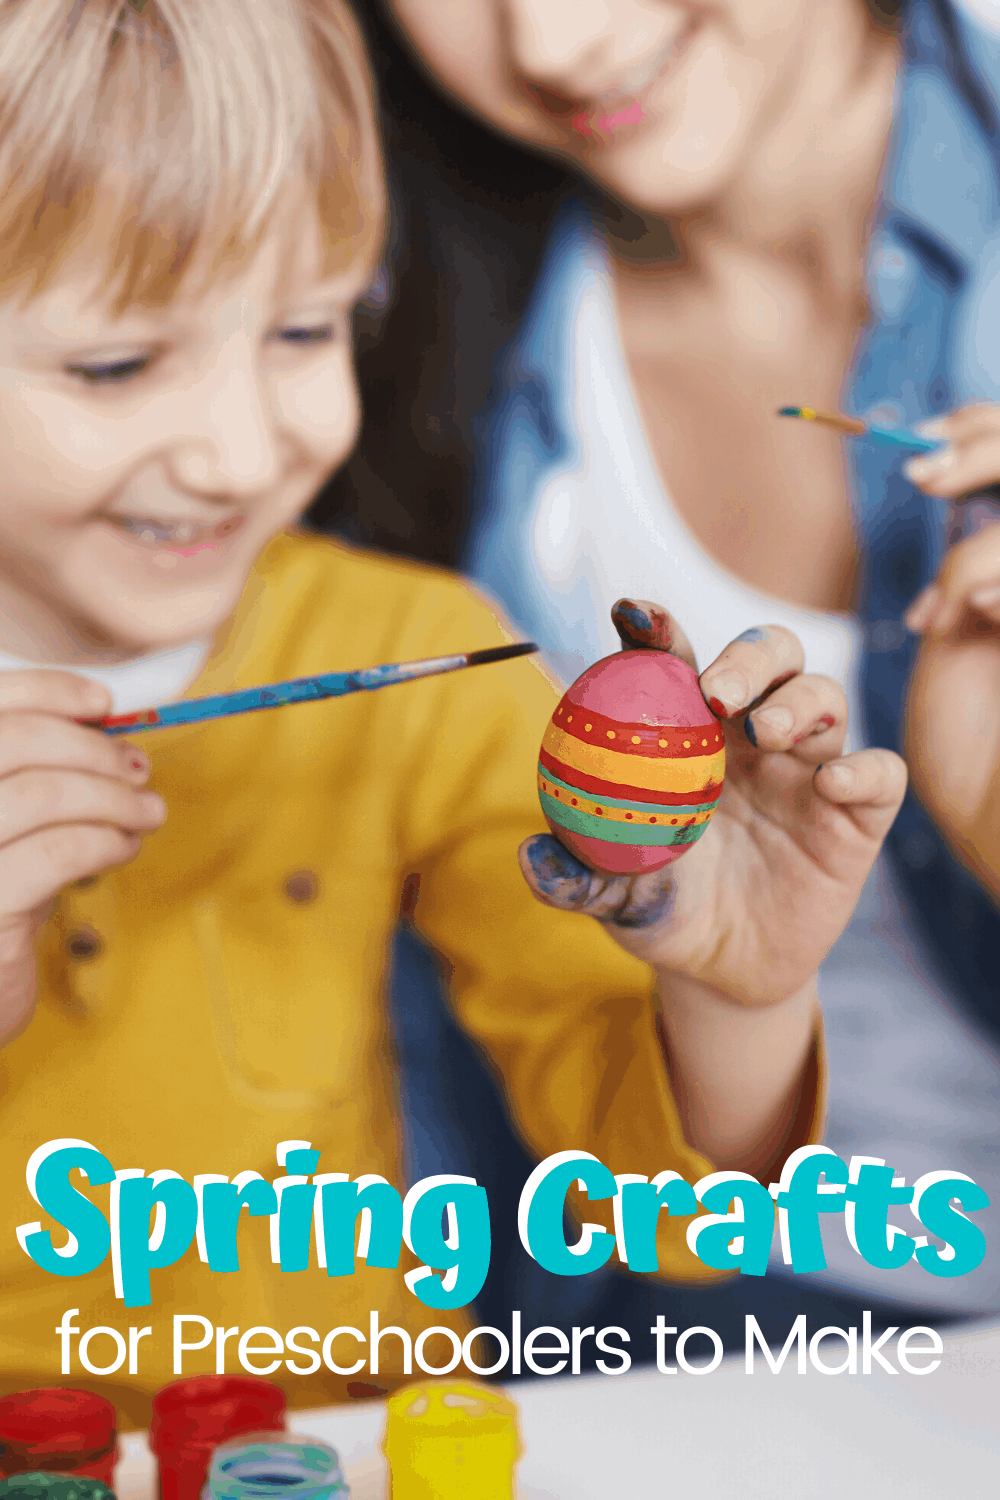 Celebrate all things spring (including holidays) with one or more of these adorable spring crafts for preschoolers. They're so much fun!